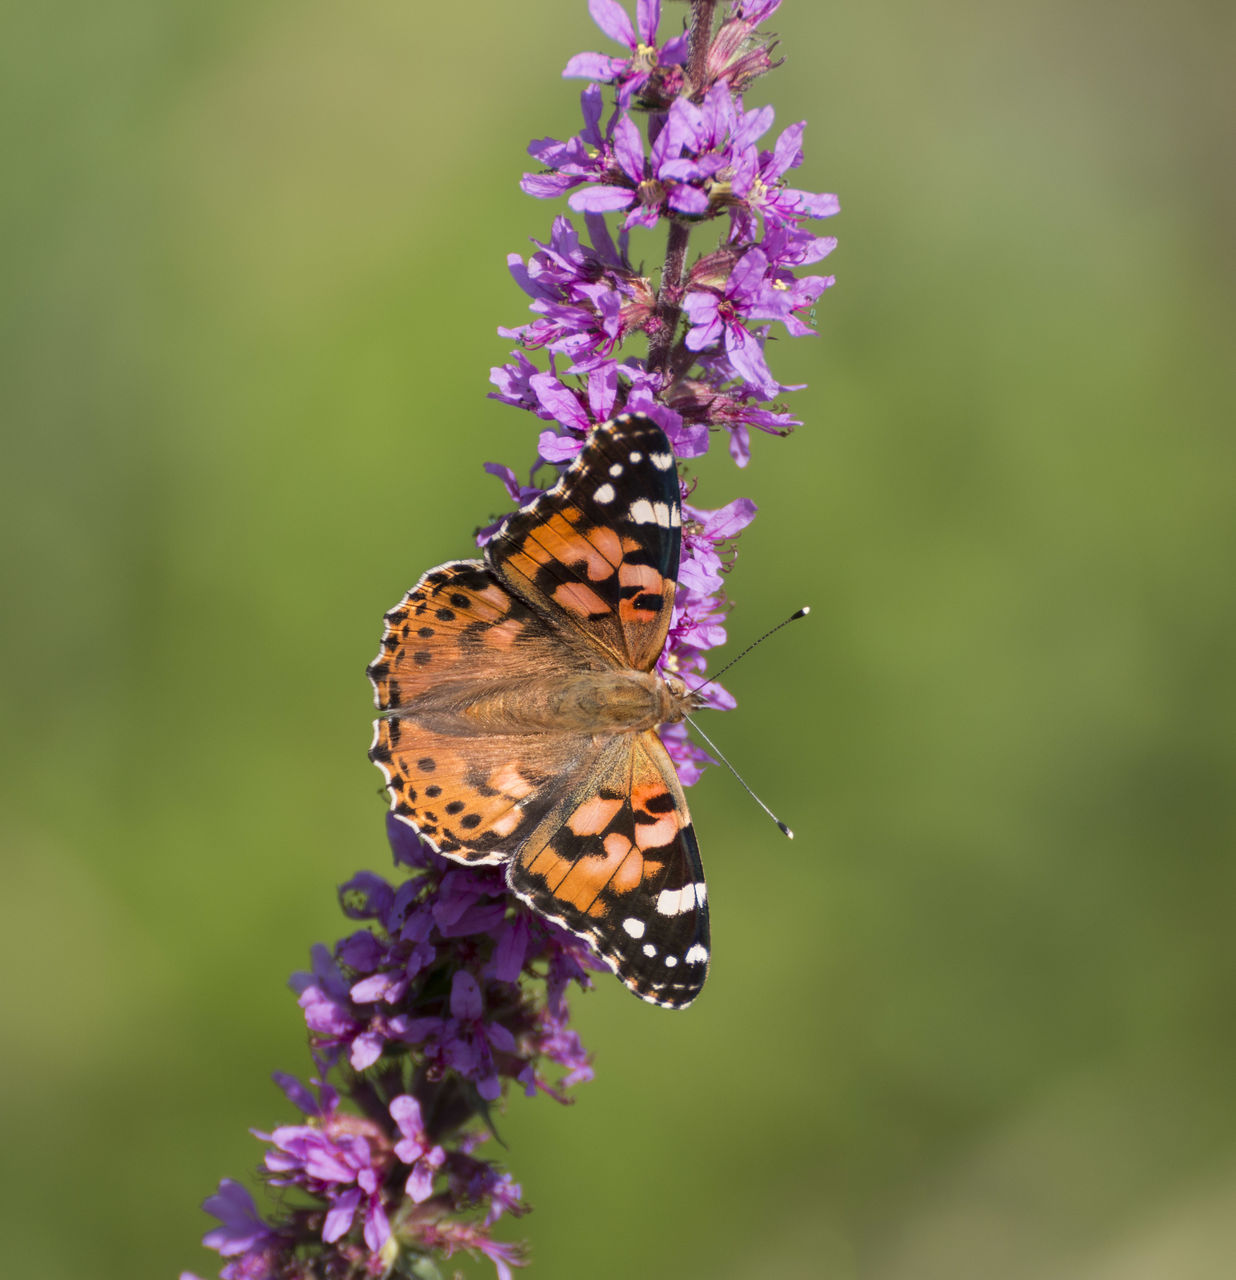 flower, animal themes, animal wildlife, one animal, flowering plant, animal, animals in the wild, invertebrate, insect, fragility, vulnerability, beauty in nature, butterfly - insect, plant, animal wing, close-up, flower head, petal, freshness, pollination, no people, purple, outdoors, butterfly